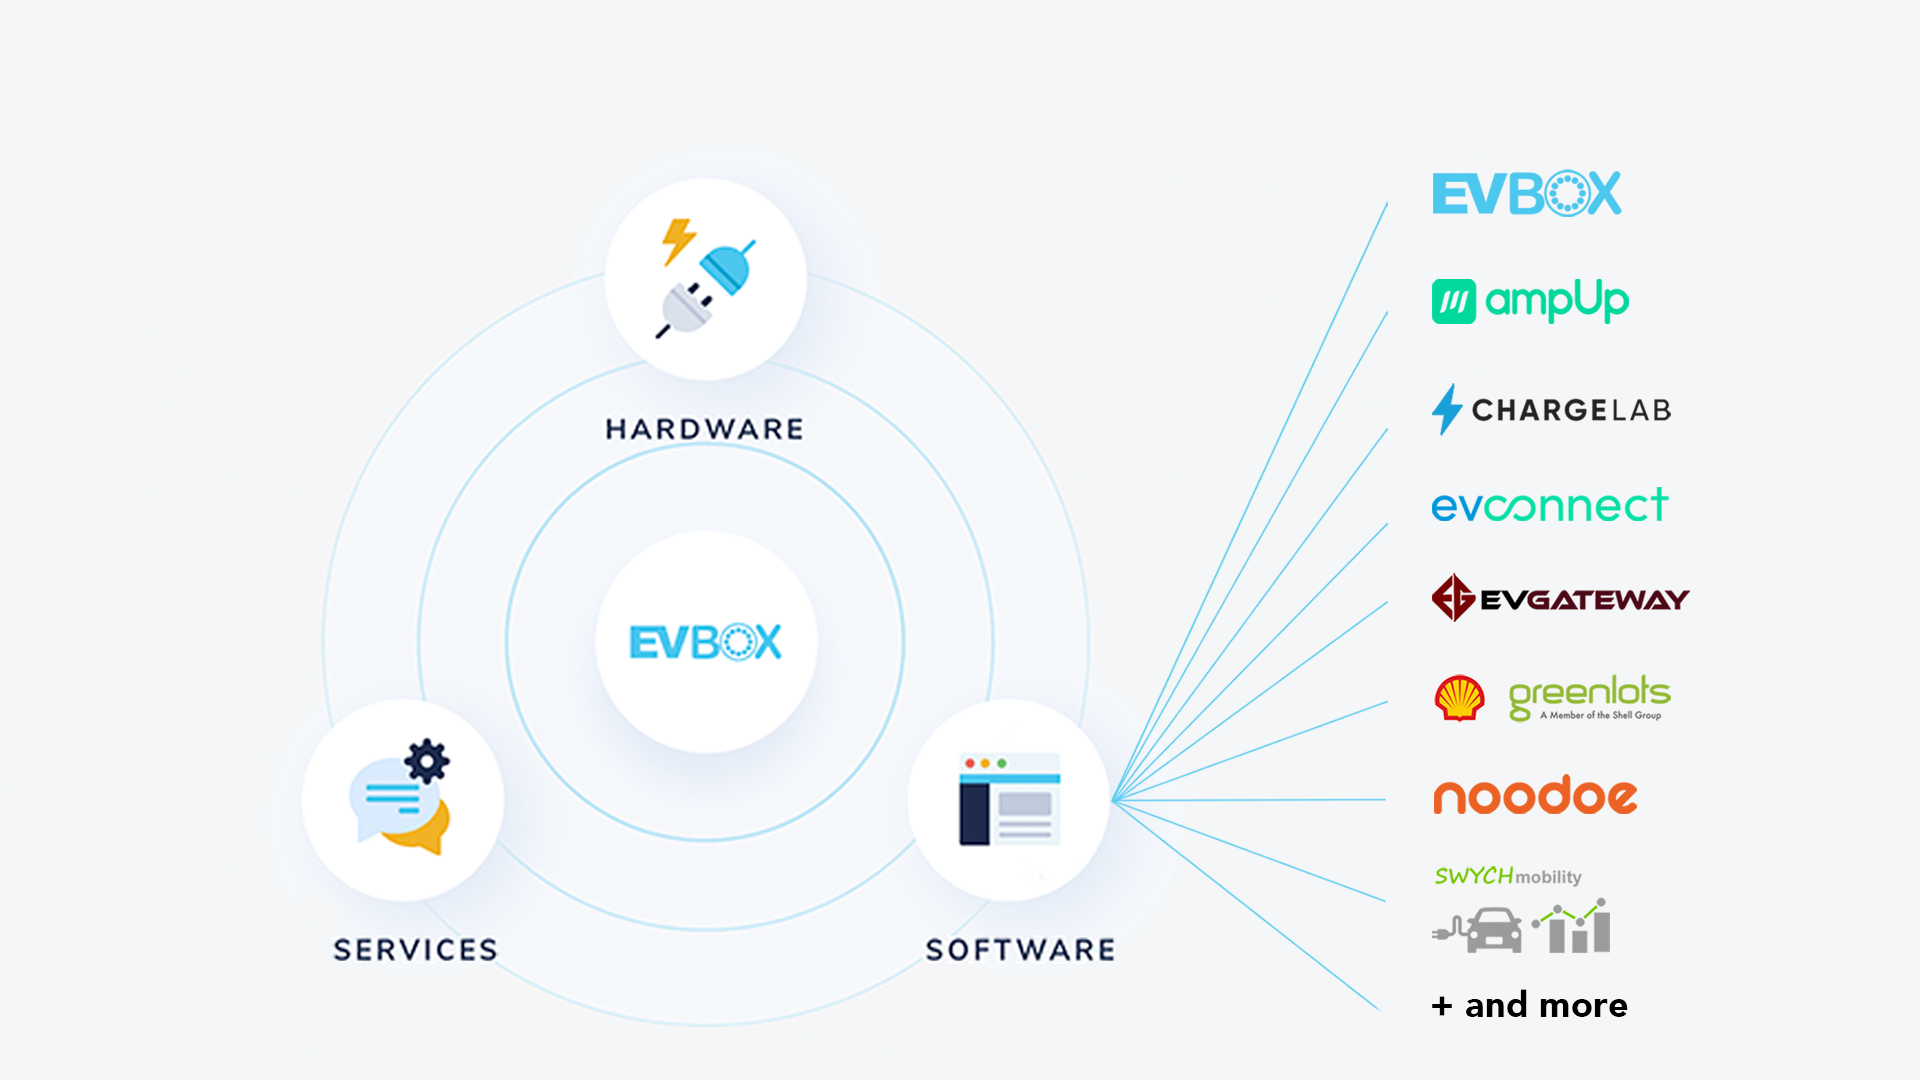 A visual that represents the EVBox  charging solution ecosystem consisting of Hardware, Services and Software. In this image, the software element is expended with examples of software providers that EVBox works with: AmpUp, Chargelab, EVconnect, EVGATEWAY, Greenlots, Noodoe, SWYCHmobility, and more.